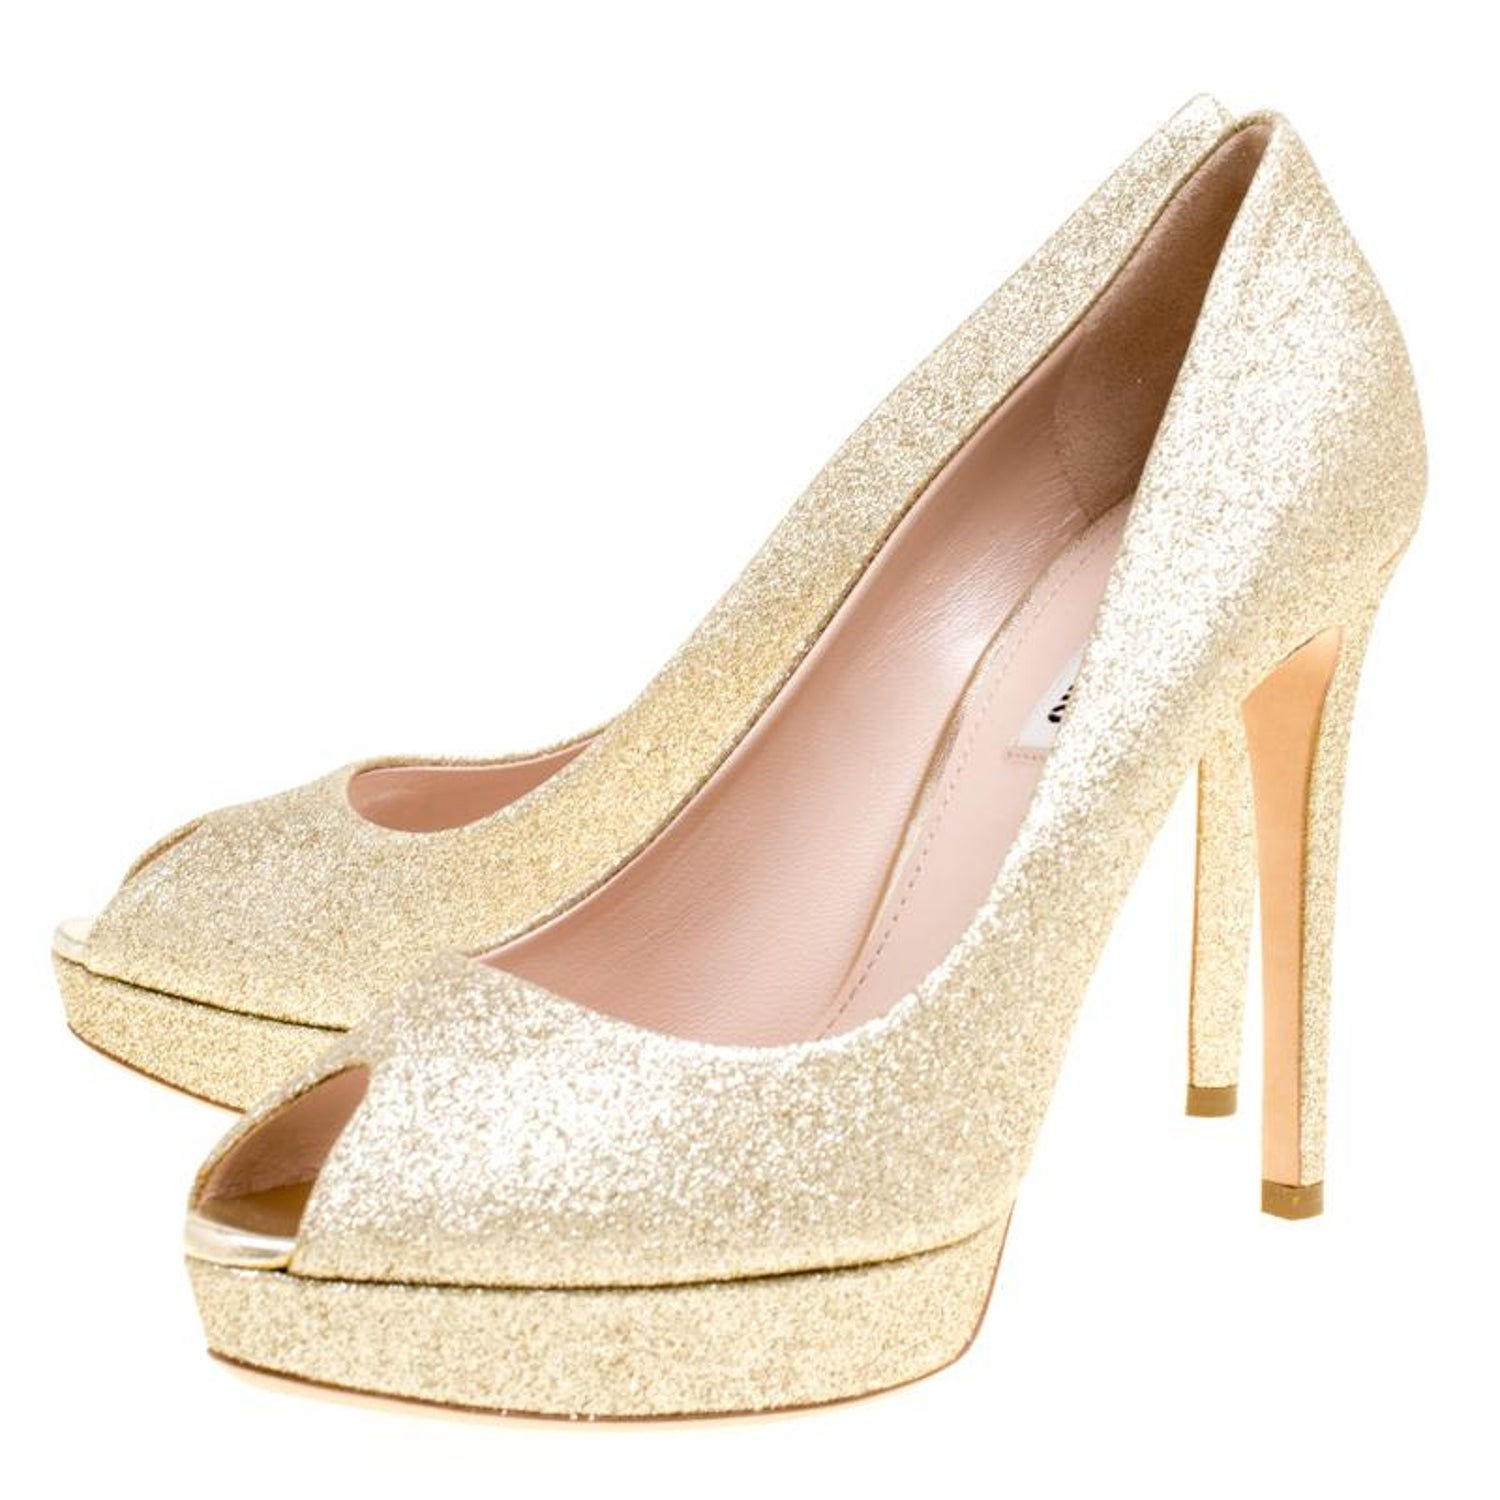 1b1d6fba34 Miu Miu Metallic Gold Glitter Peep Toe Platform Pumps Size 39.5 For Sale at  1stdibs